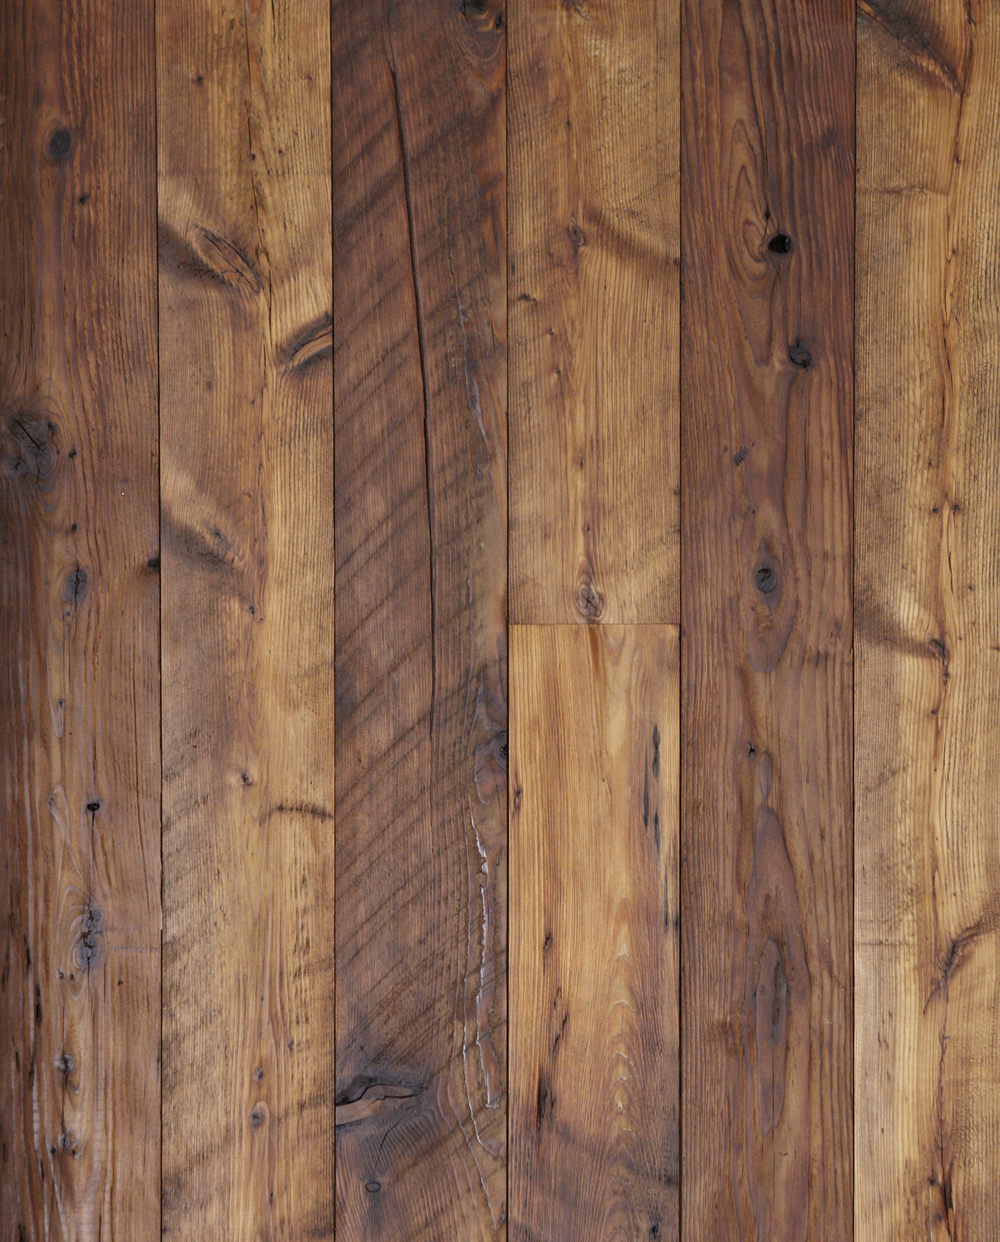 Reclaimed Hemlock Softwood Paneling [Surfaced Mushroom Wood]